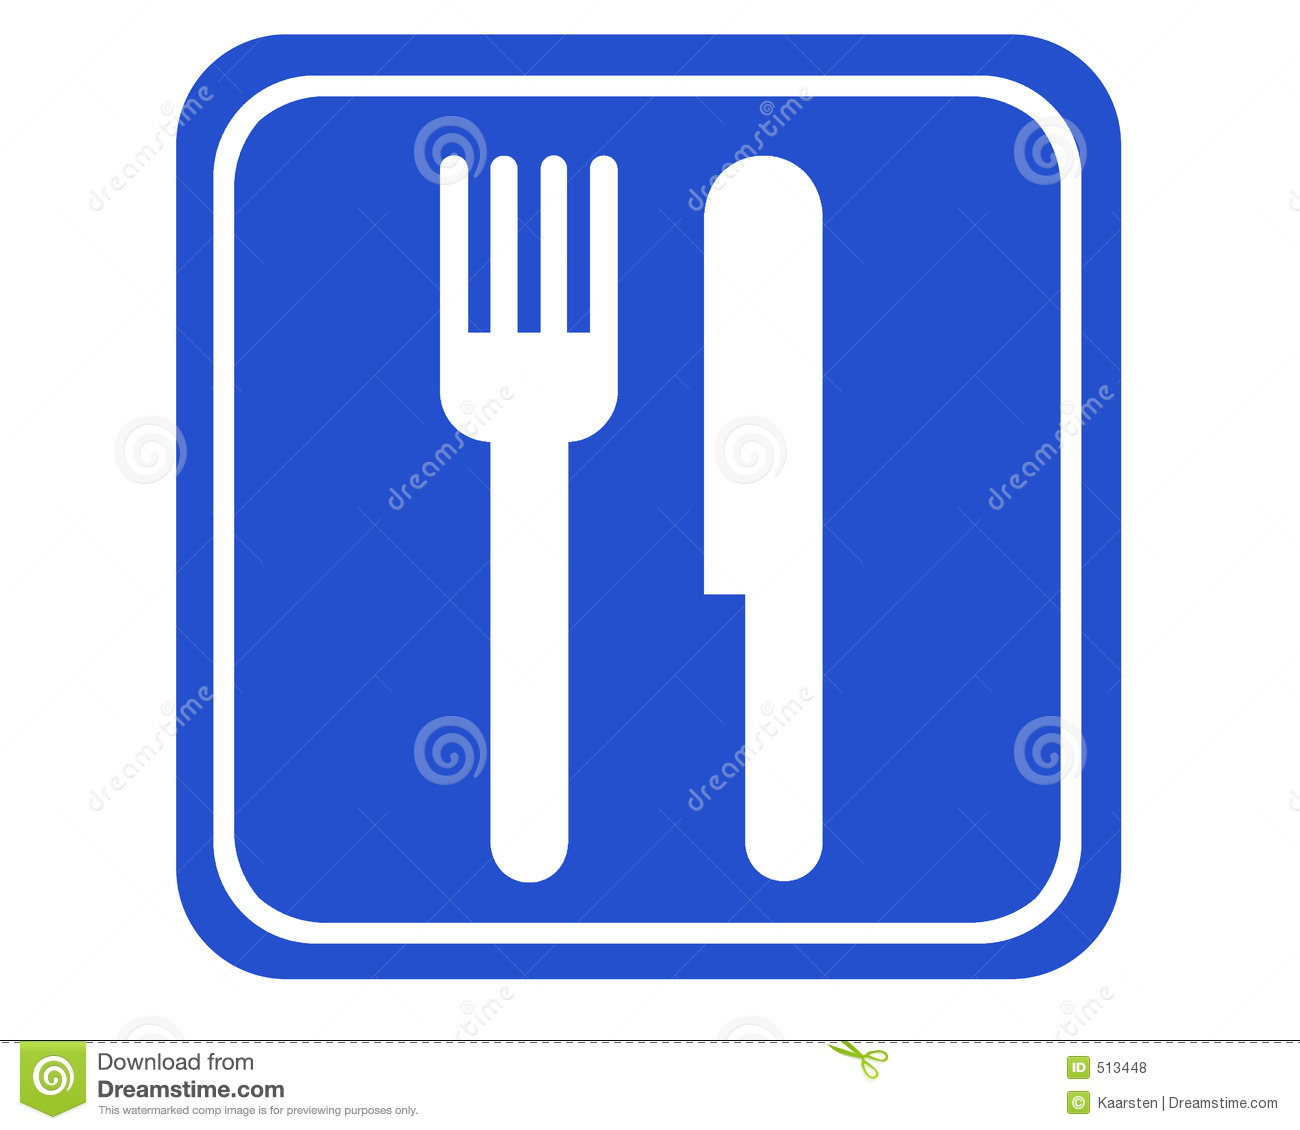 canteen stock illustration illustration of signpost free knife and fork clipart knife and fork clipart black and white